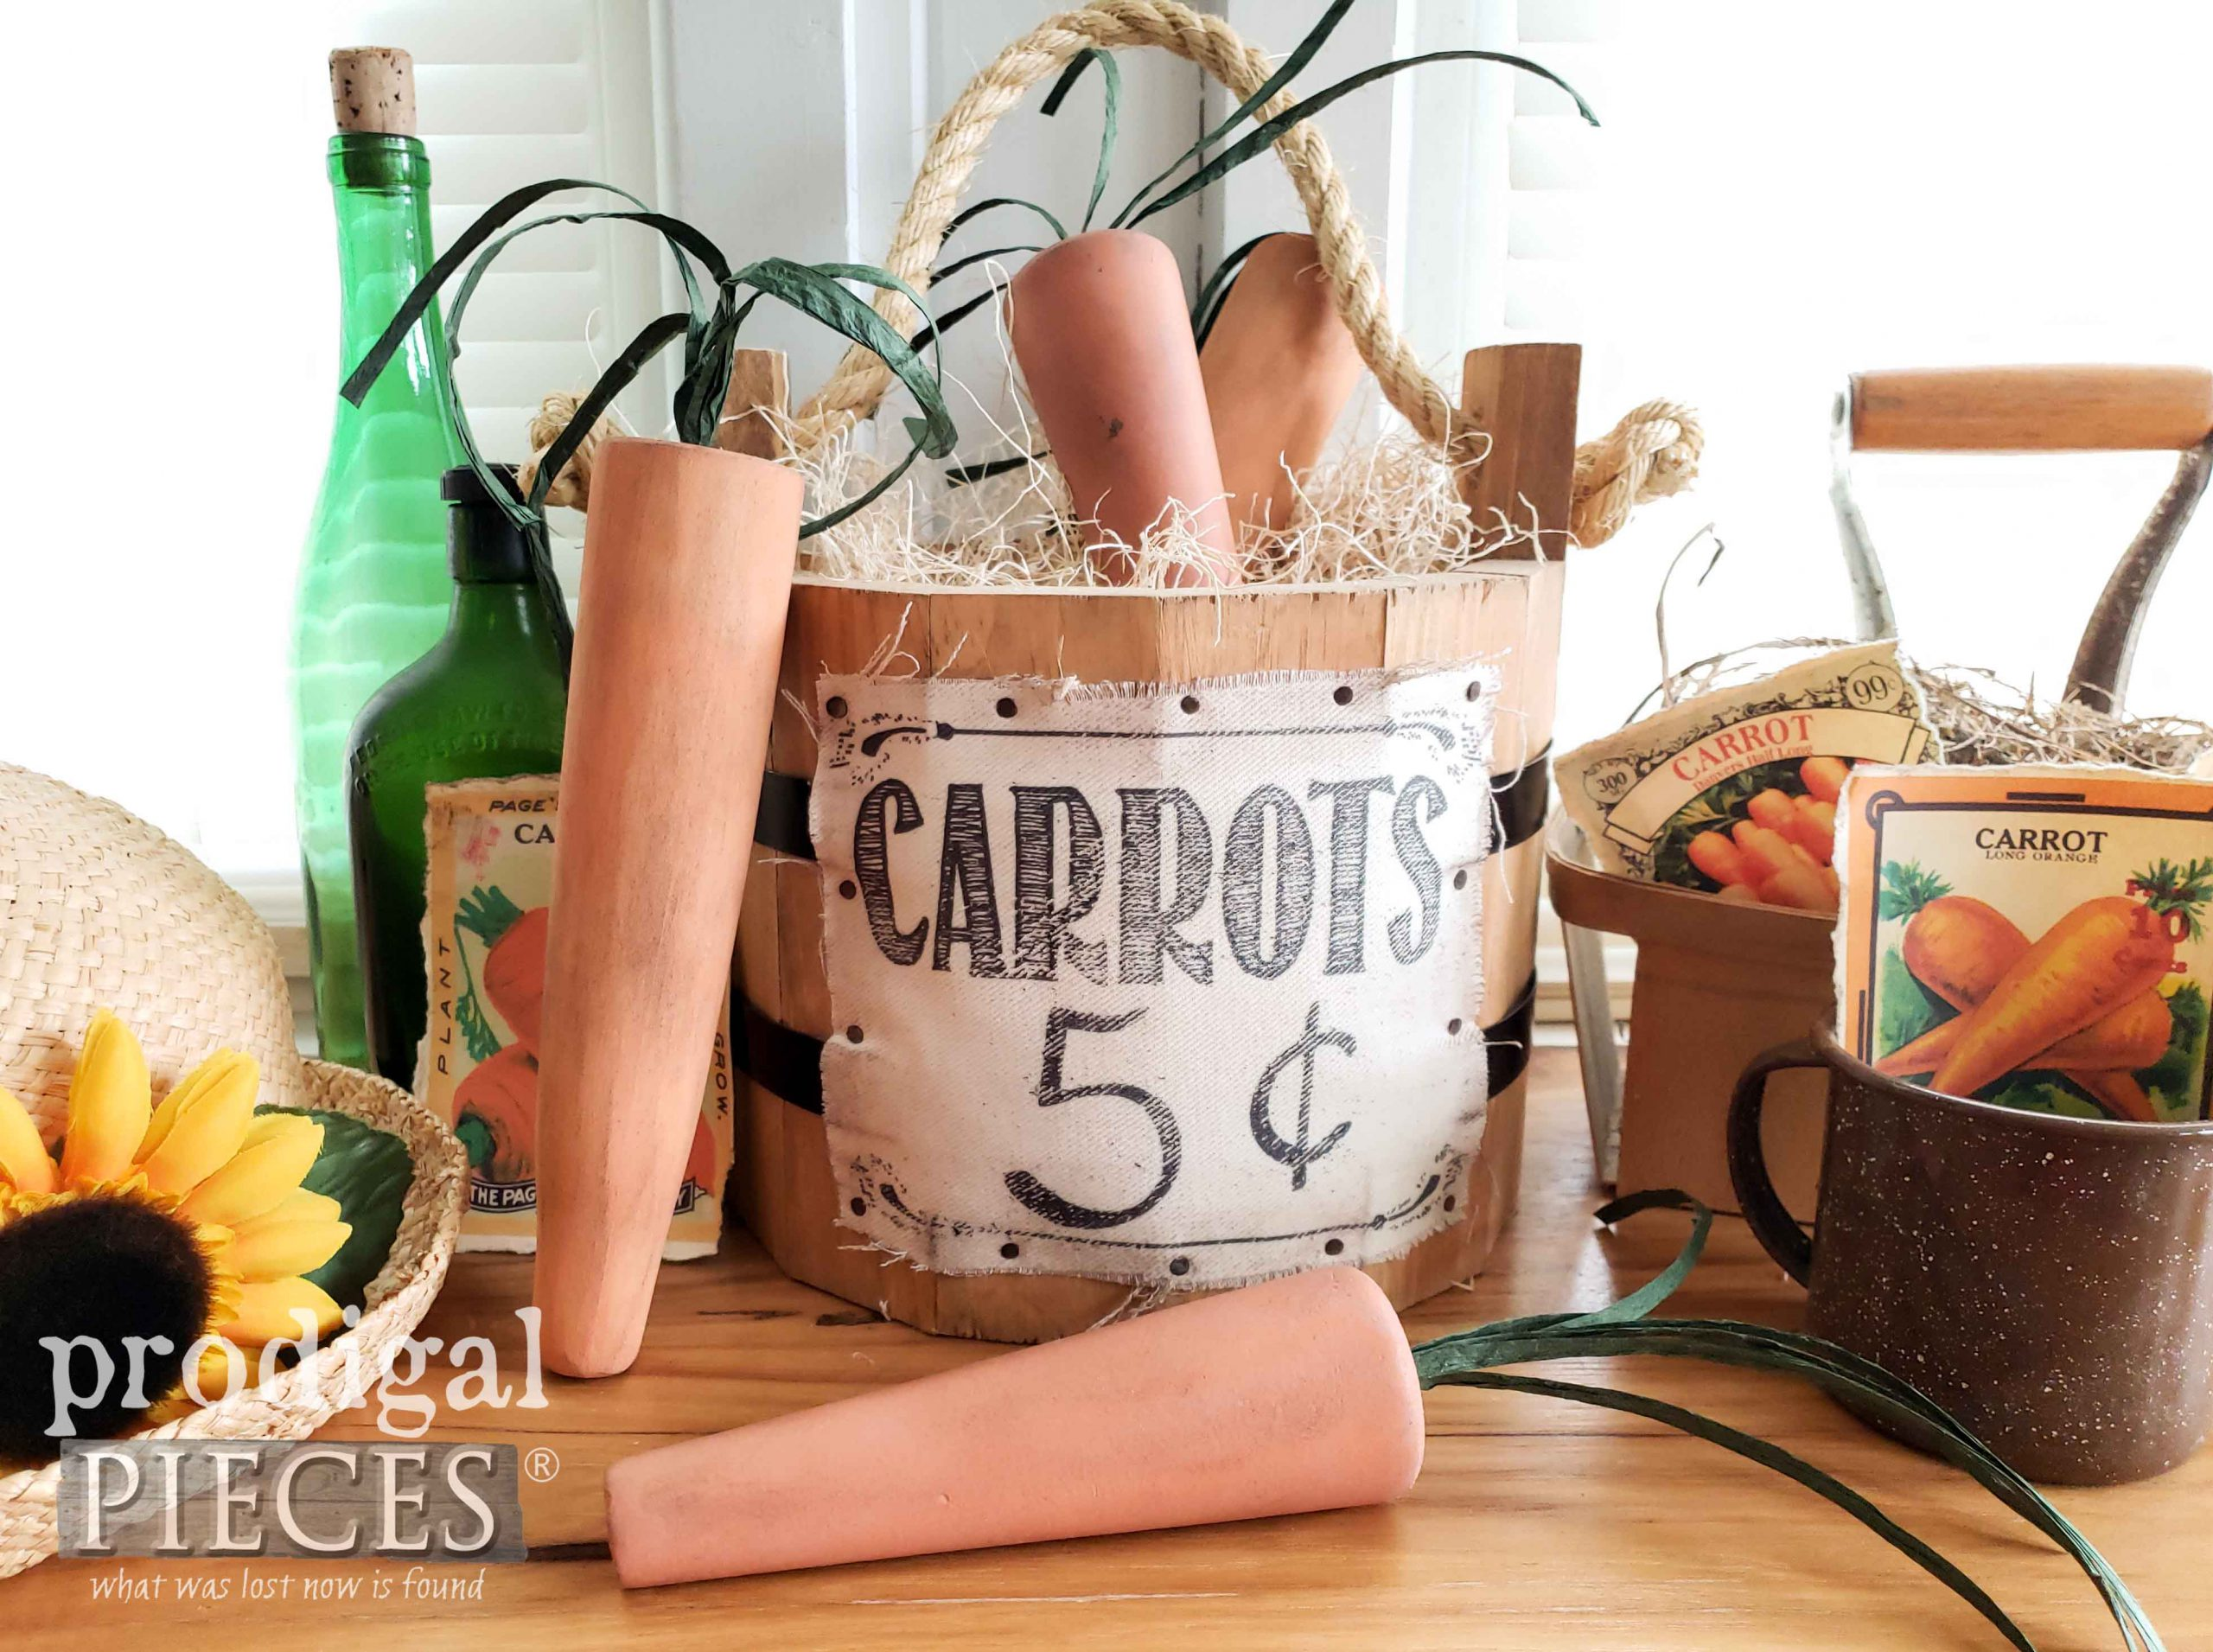 Handmade Bucket with Carrots for Farmhouse Cottage Style Spring Decor available at Prodigal Pieces | shop.prodigalpieces.com #prodigalpieces #spring #shopping #handmade #home #homedecor